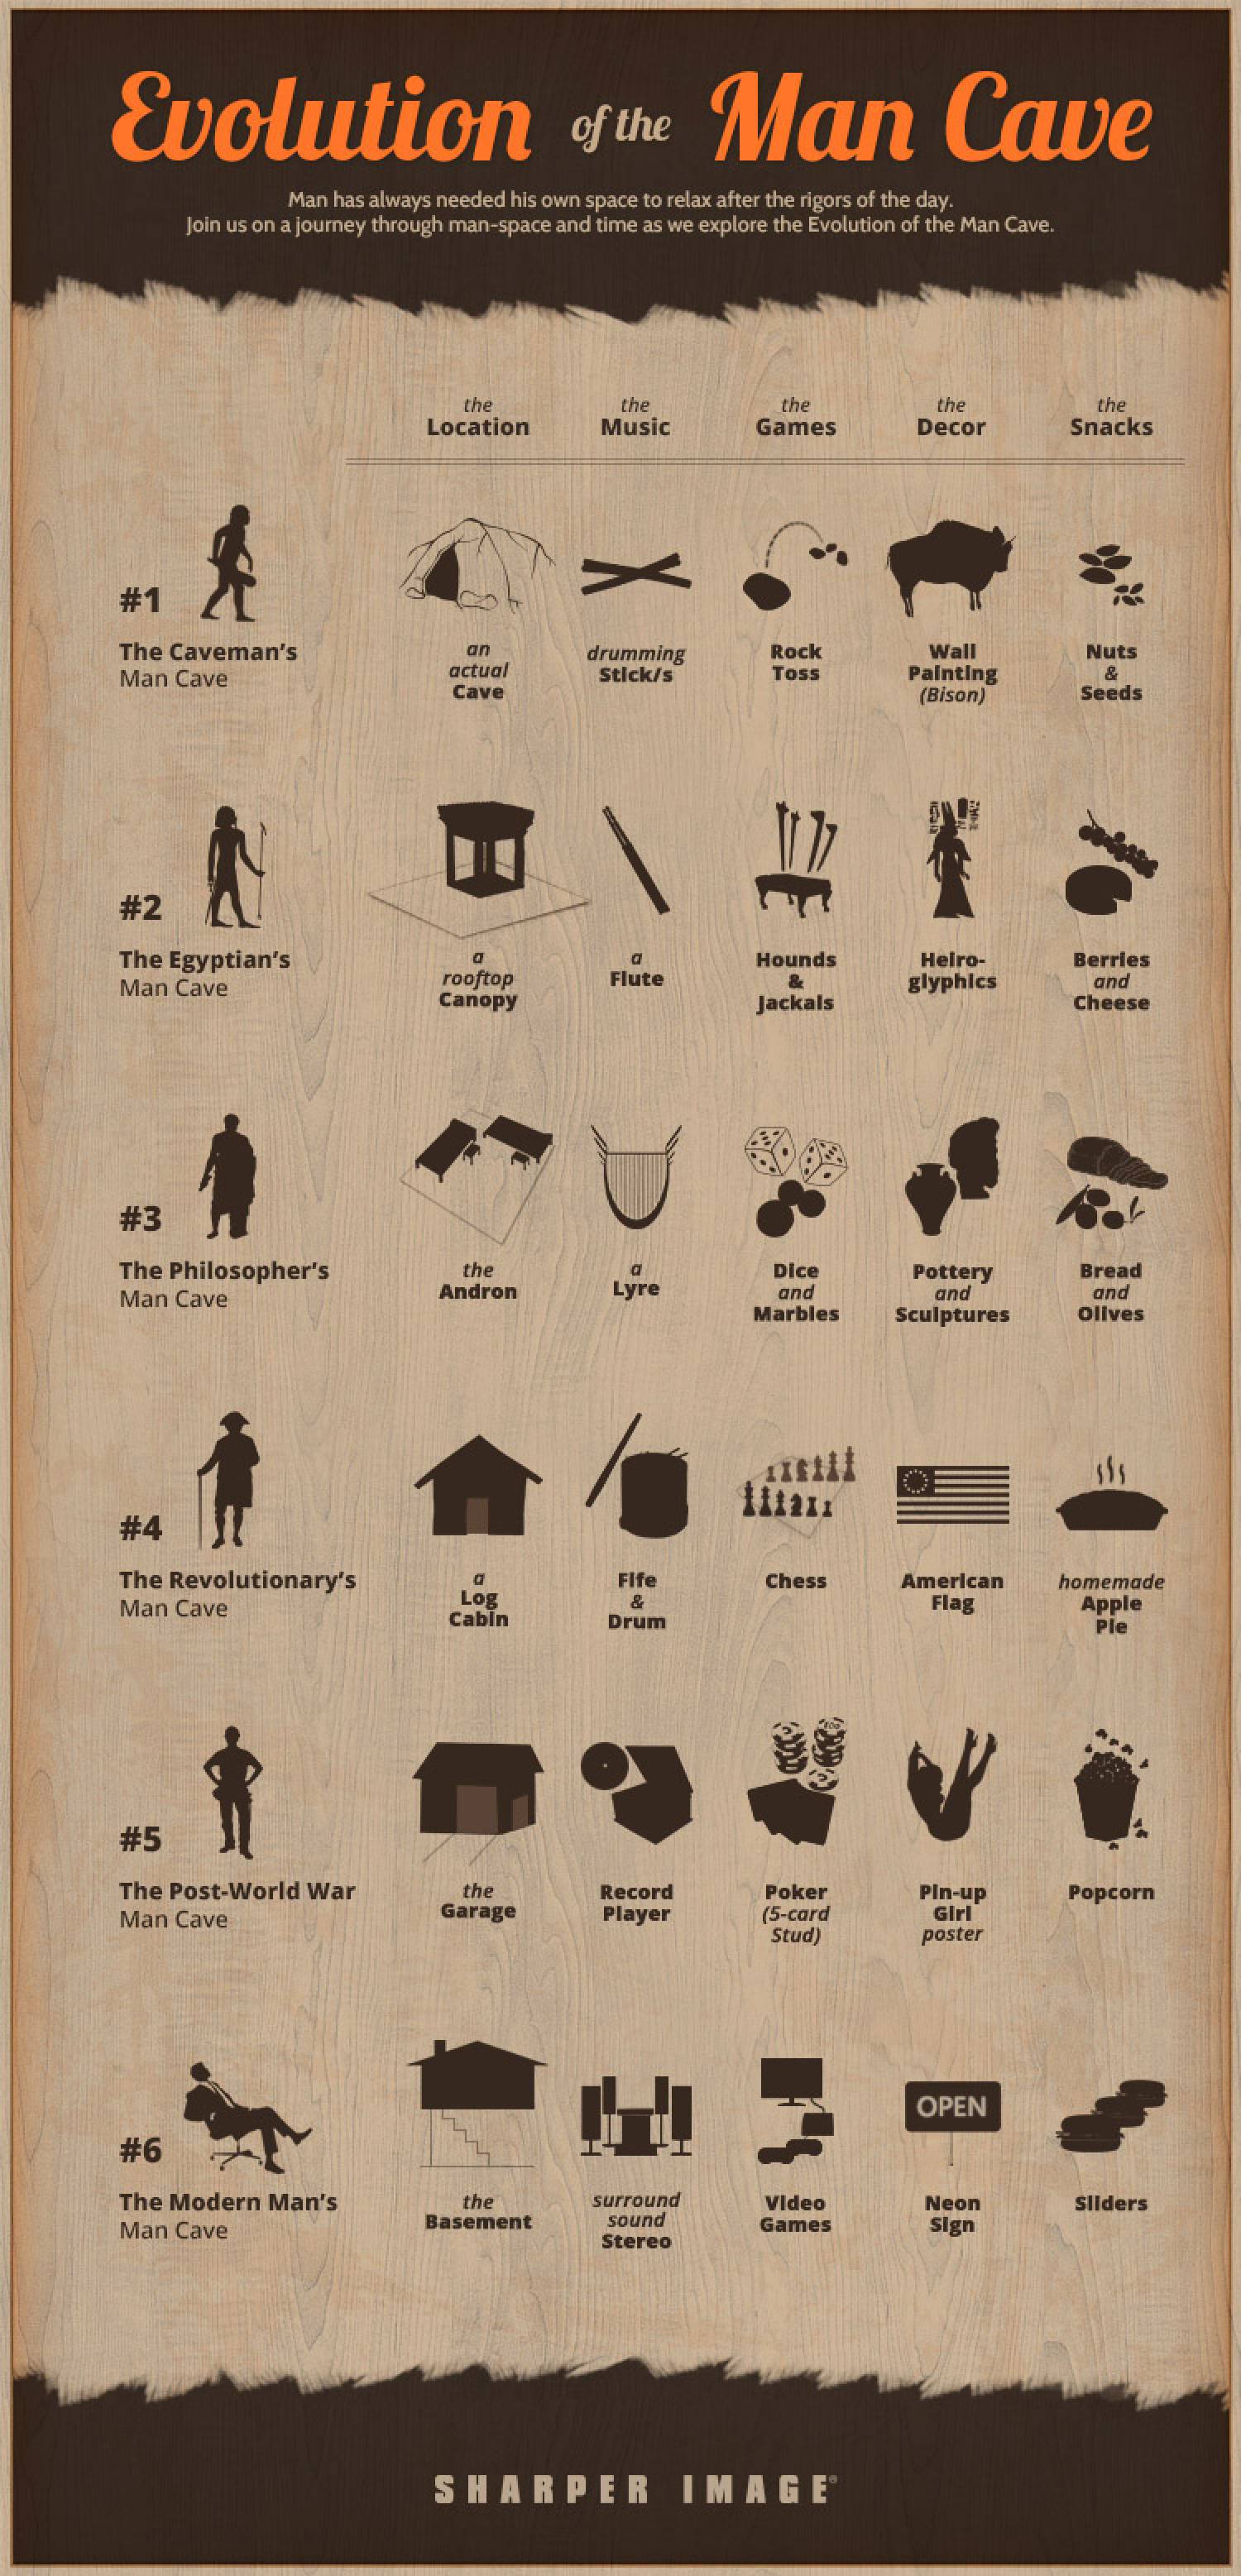 Evolution of the Man Cave Infographic